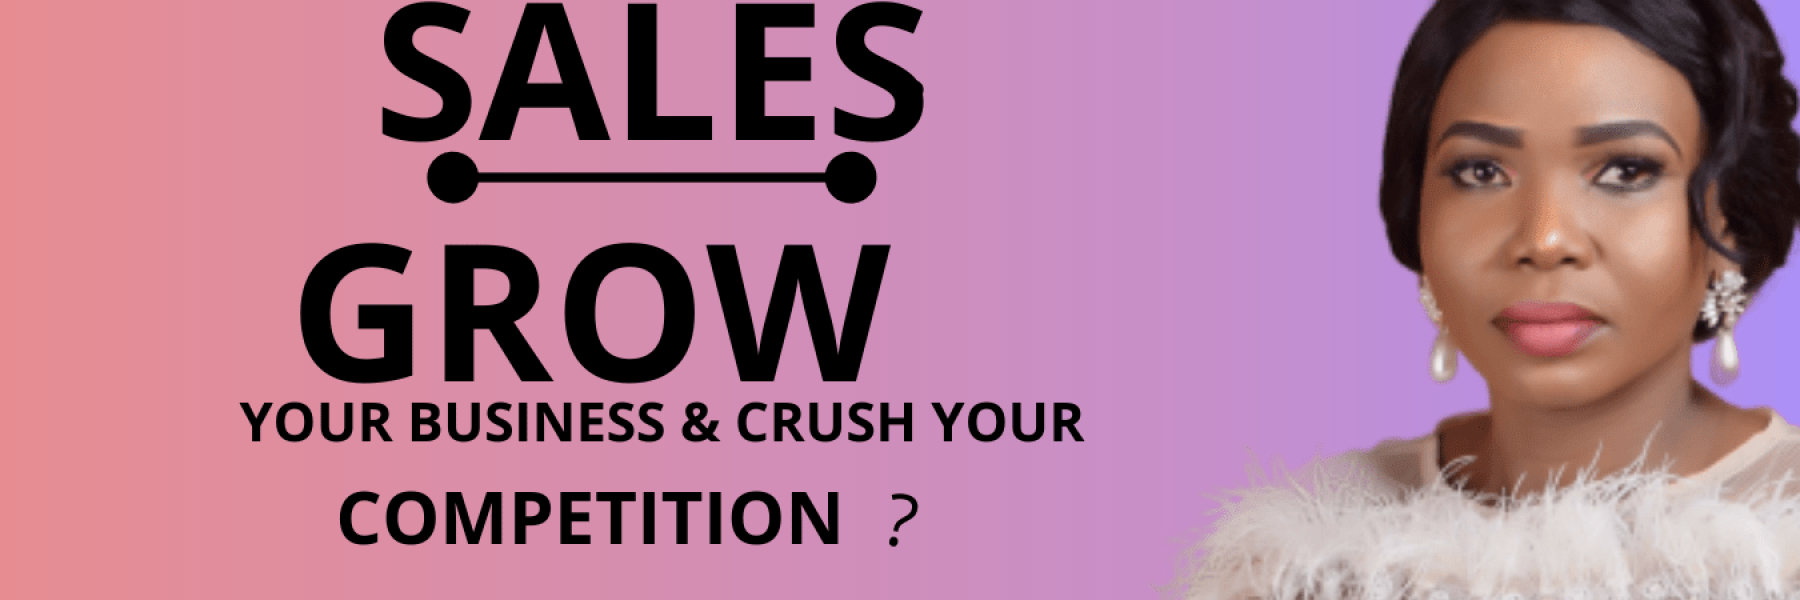 Copy of Copy of Do you want to make more SALES, grow your business and crush your competitors_ (3)